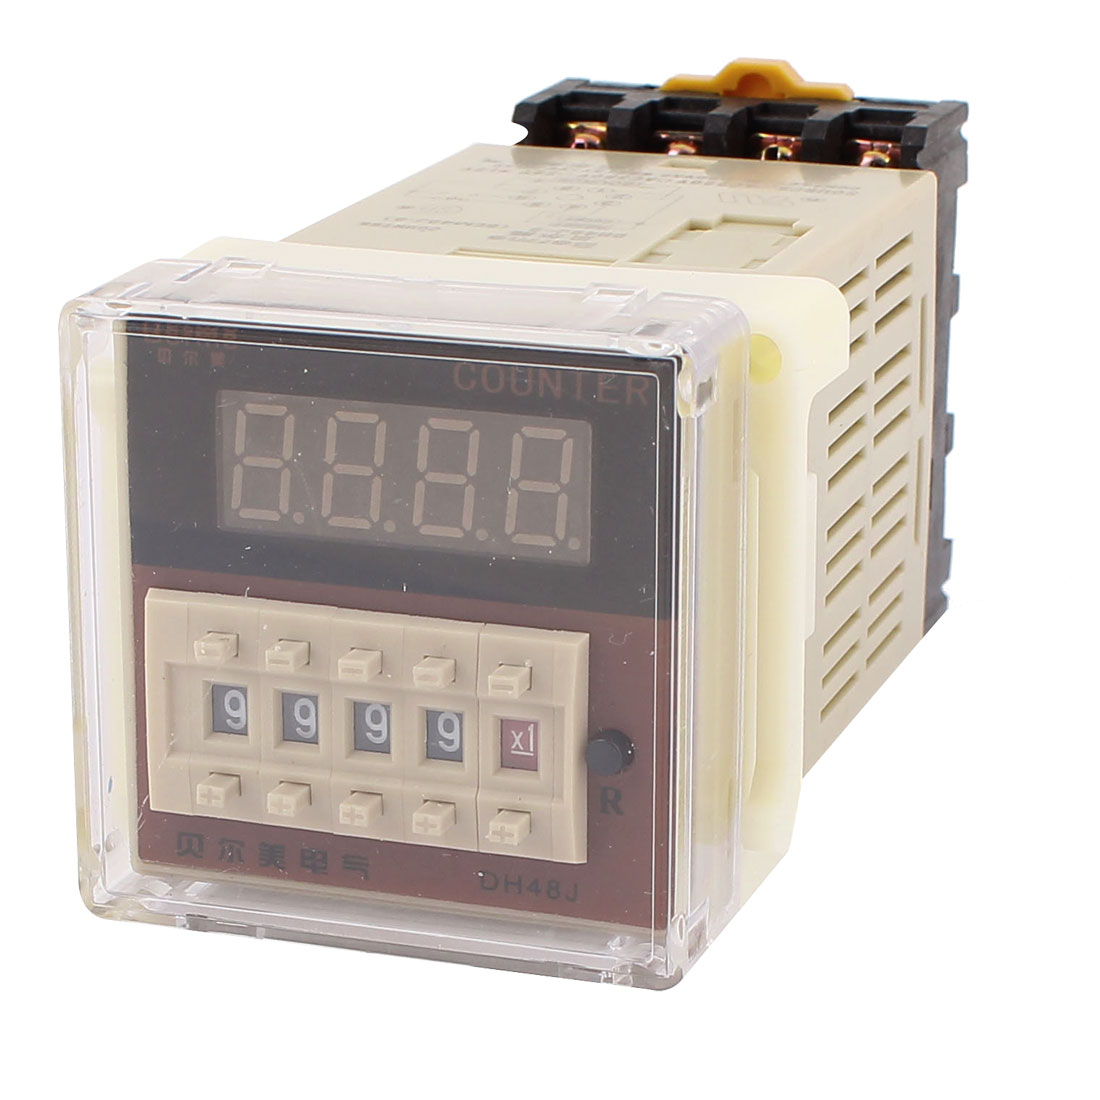 DC 12V DH48J 30 CPS Programmable Timer Digital Counter Relay w Socket